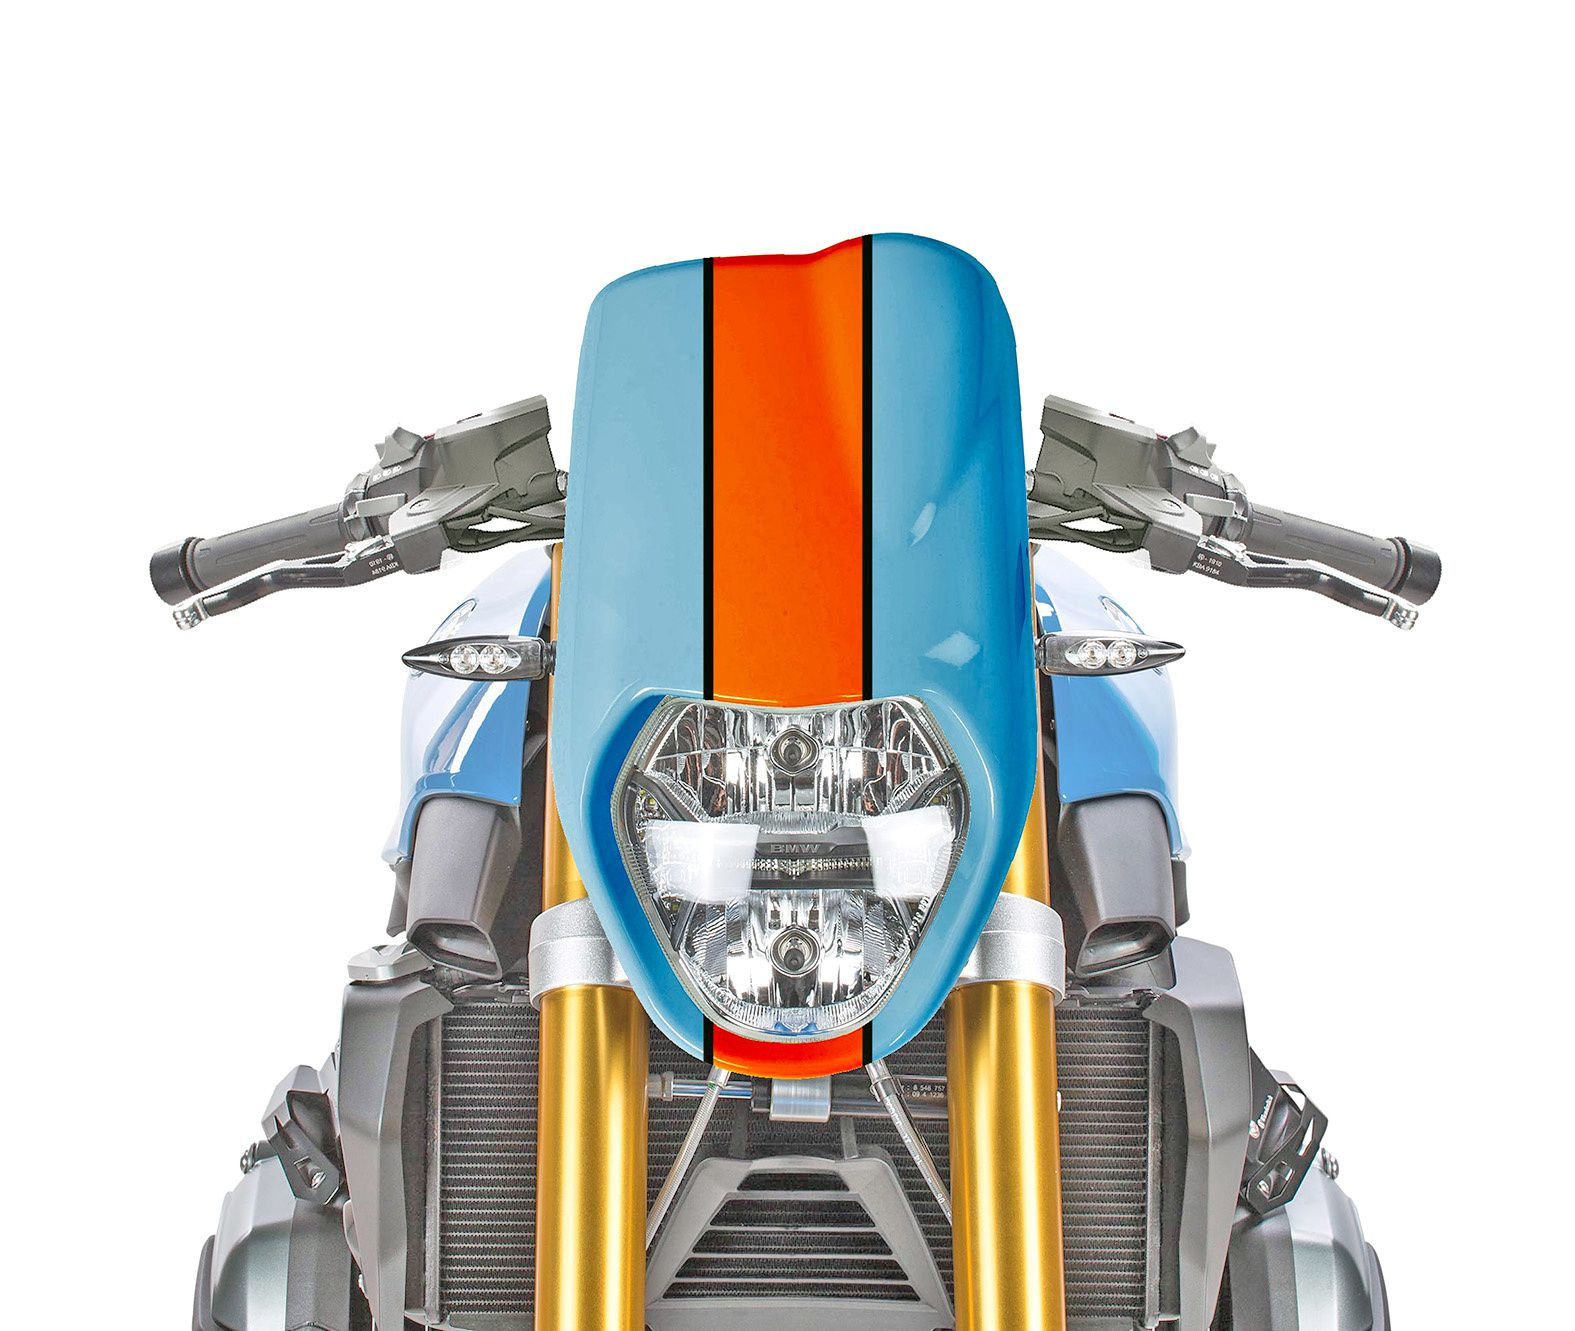 R1200R LC Mirage Fairing and Gulf Livery